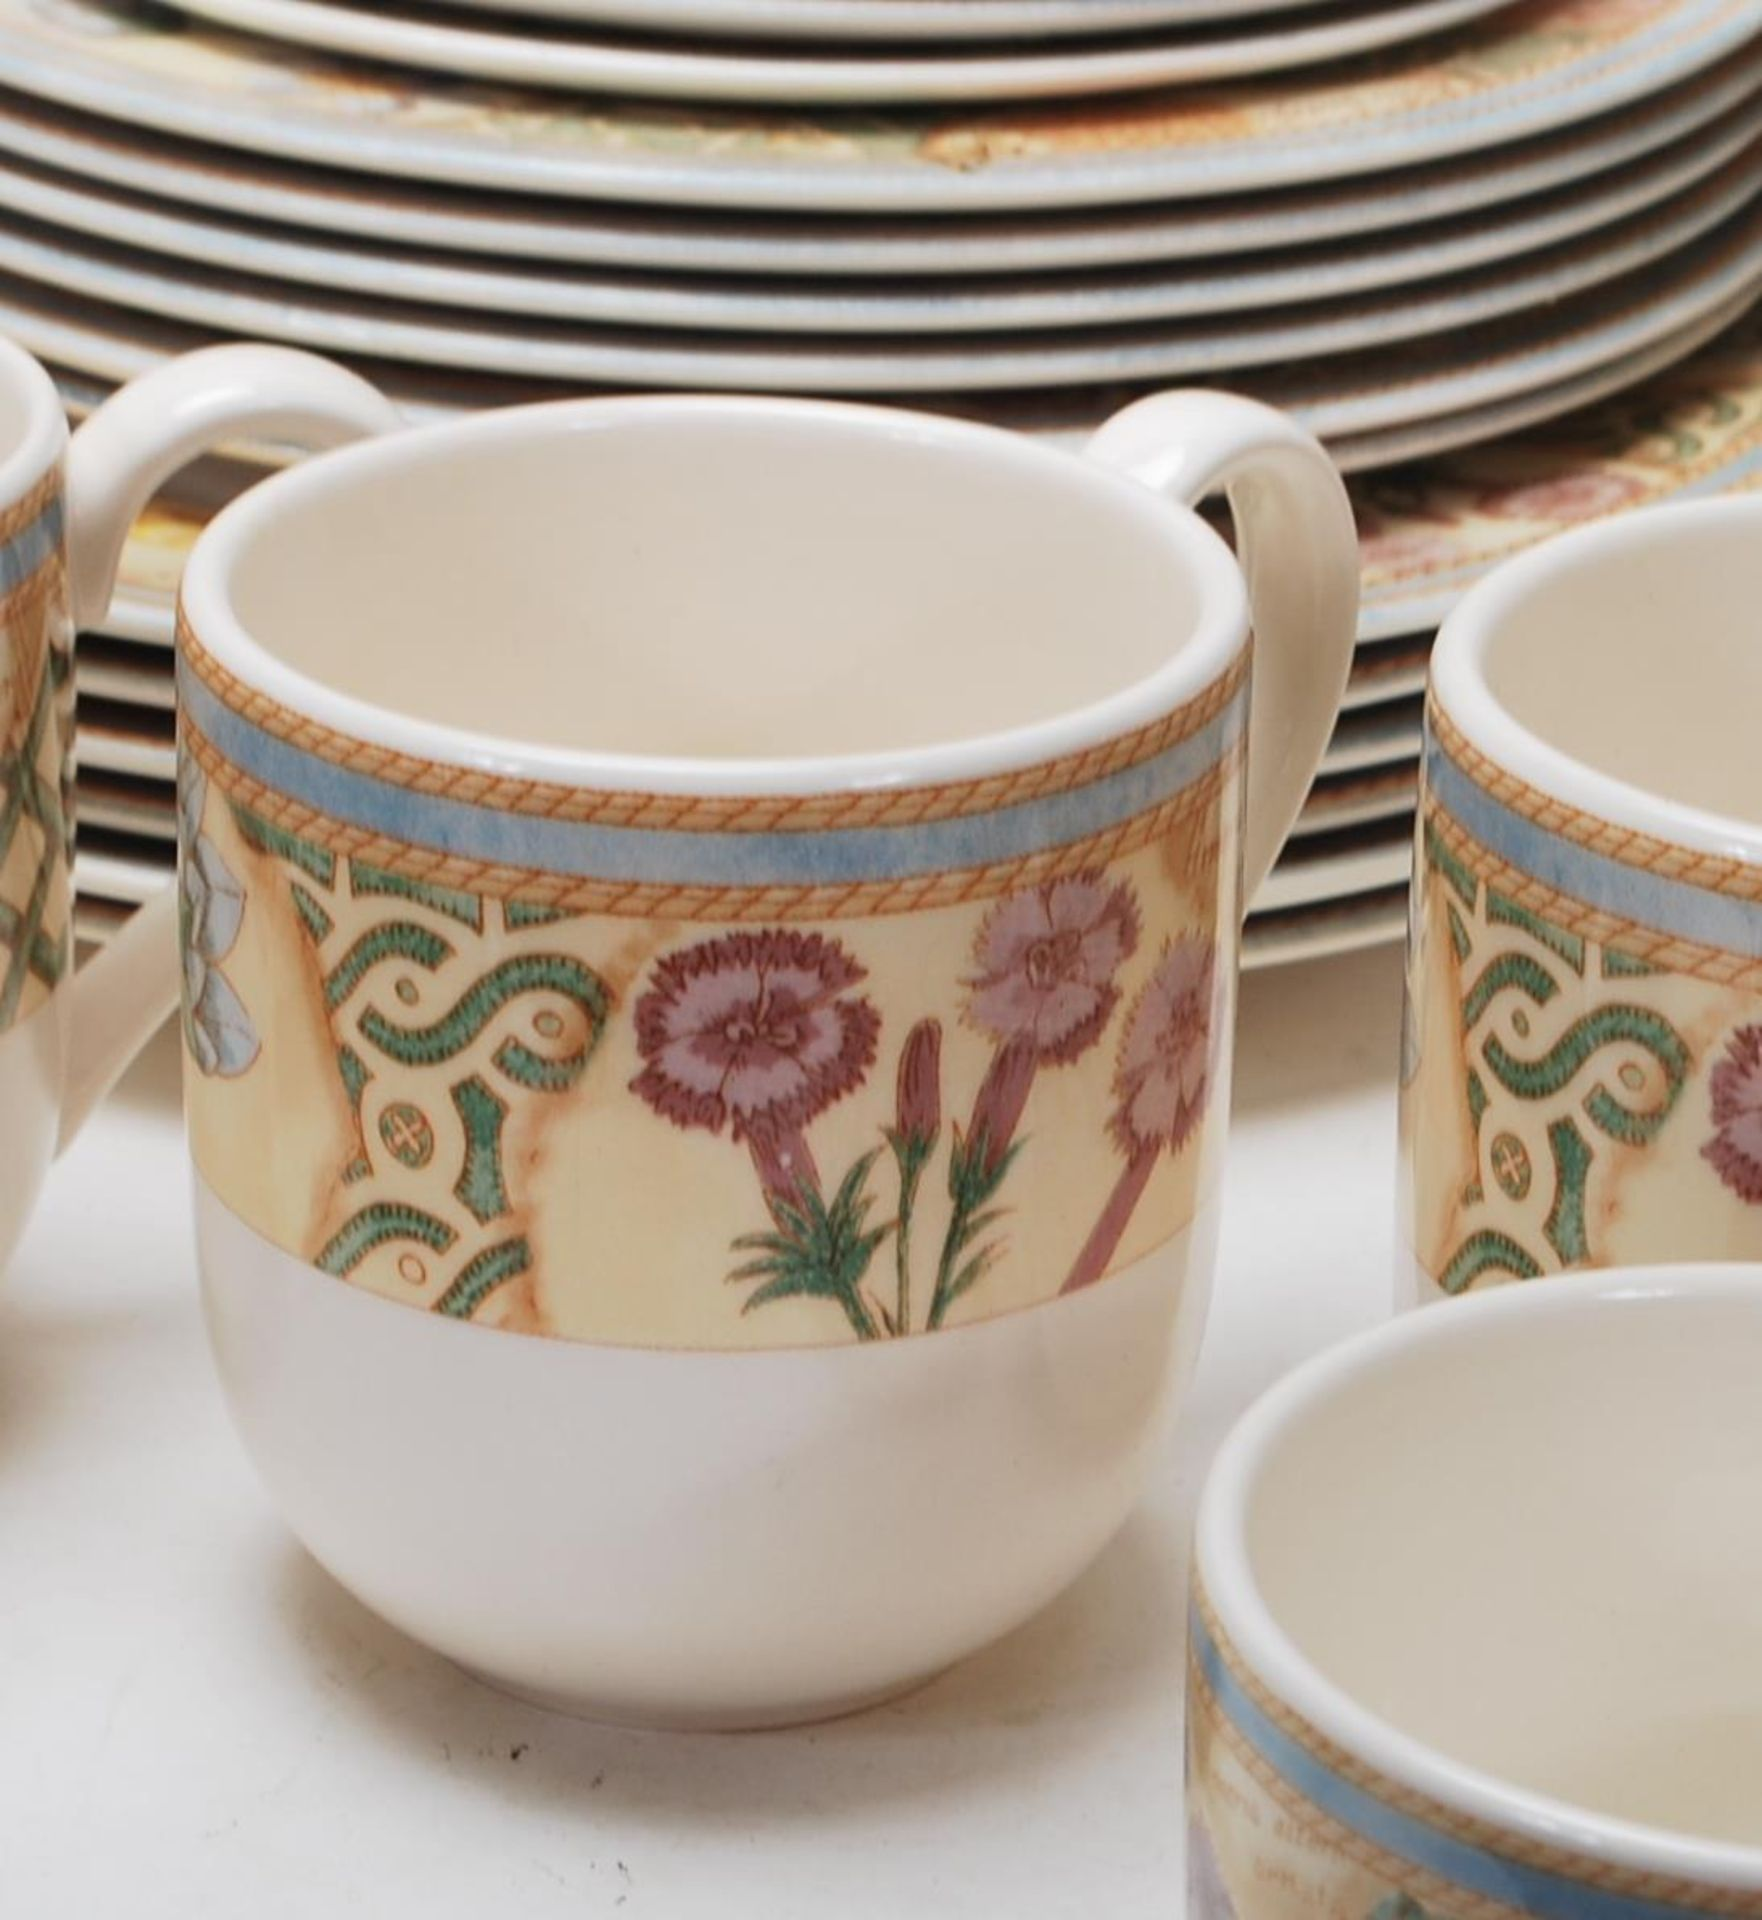 A LARGE 20TH CENTURY WEDGWOOD DINNER SERVICE WITH GRDEN MAZE PATTERN - Image 3 of 11